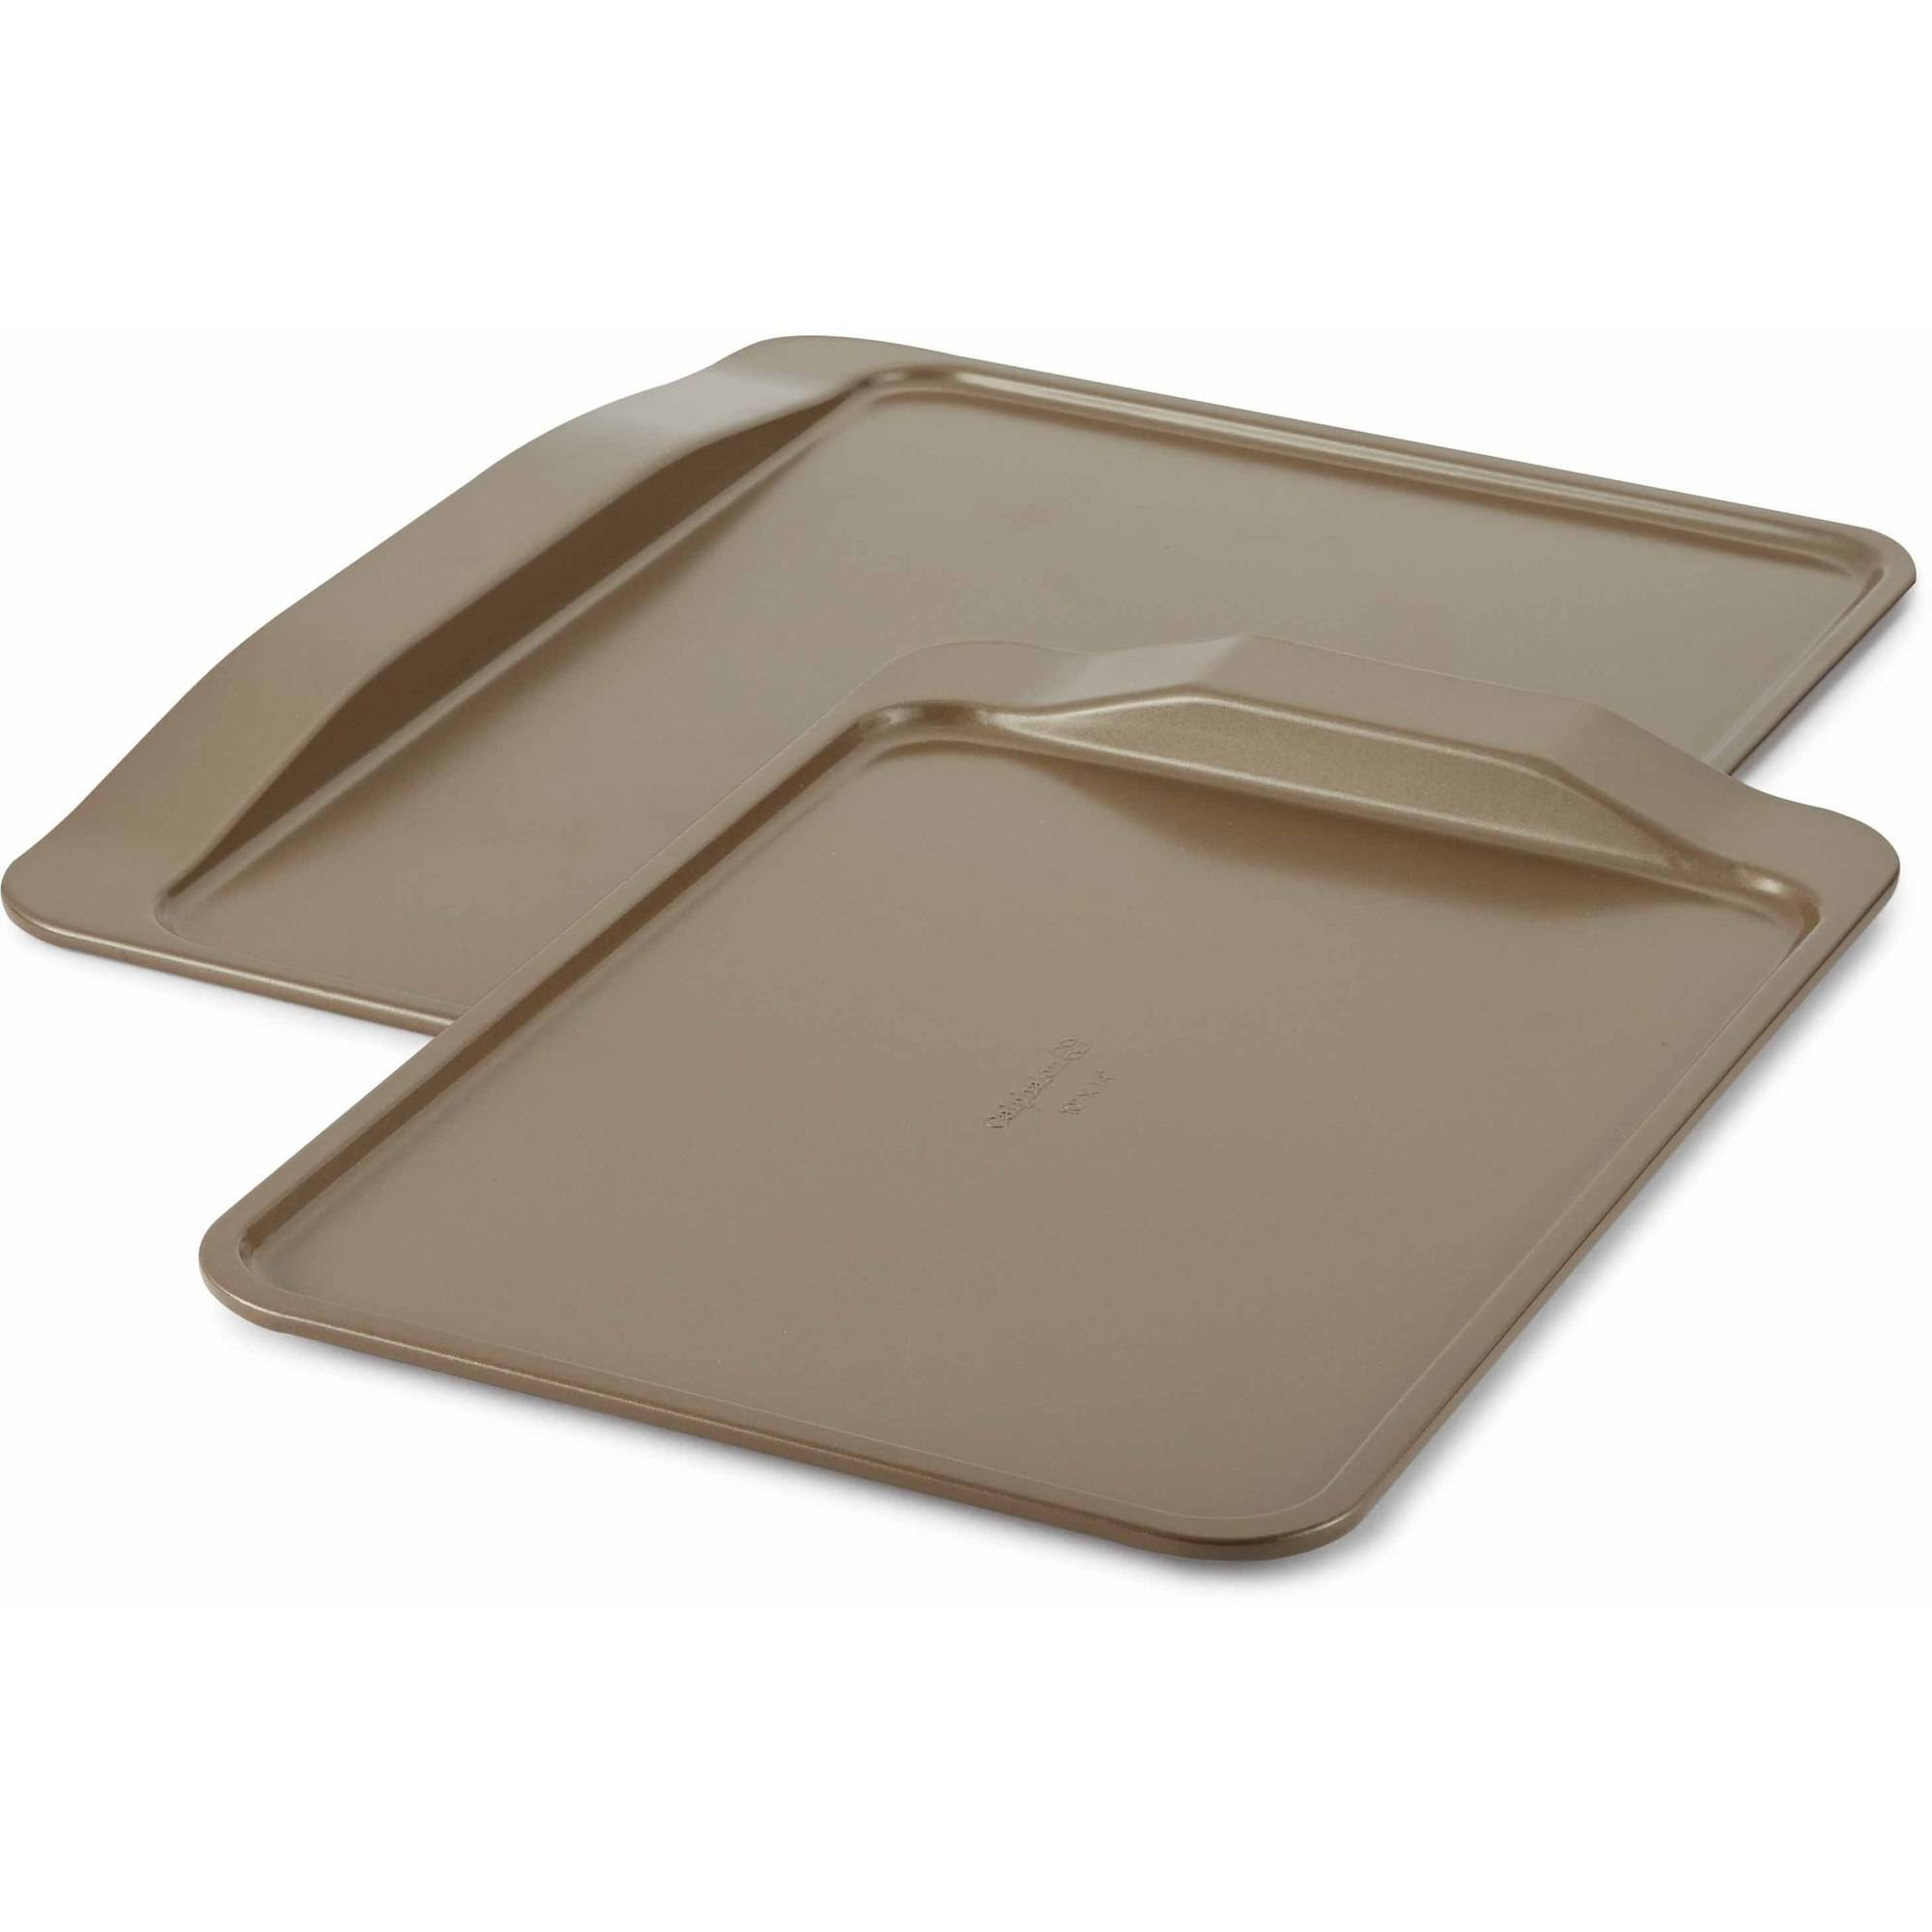 Cooking with Calphalon Nonstick Bakeware 2 Piece Cookie Sheet Set